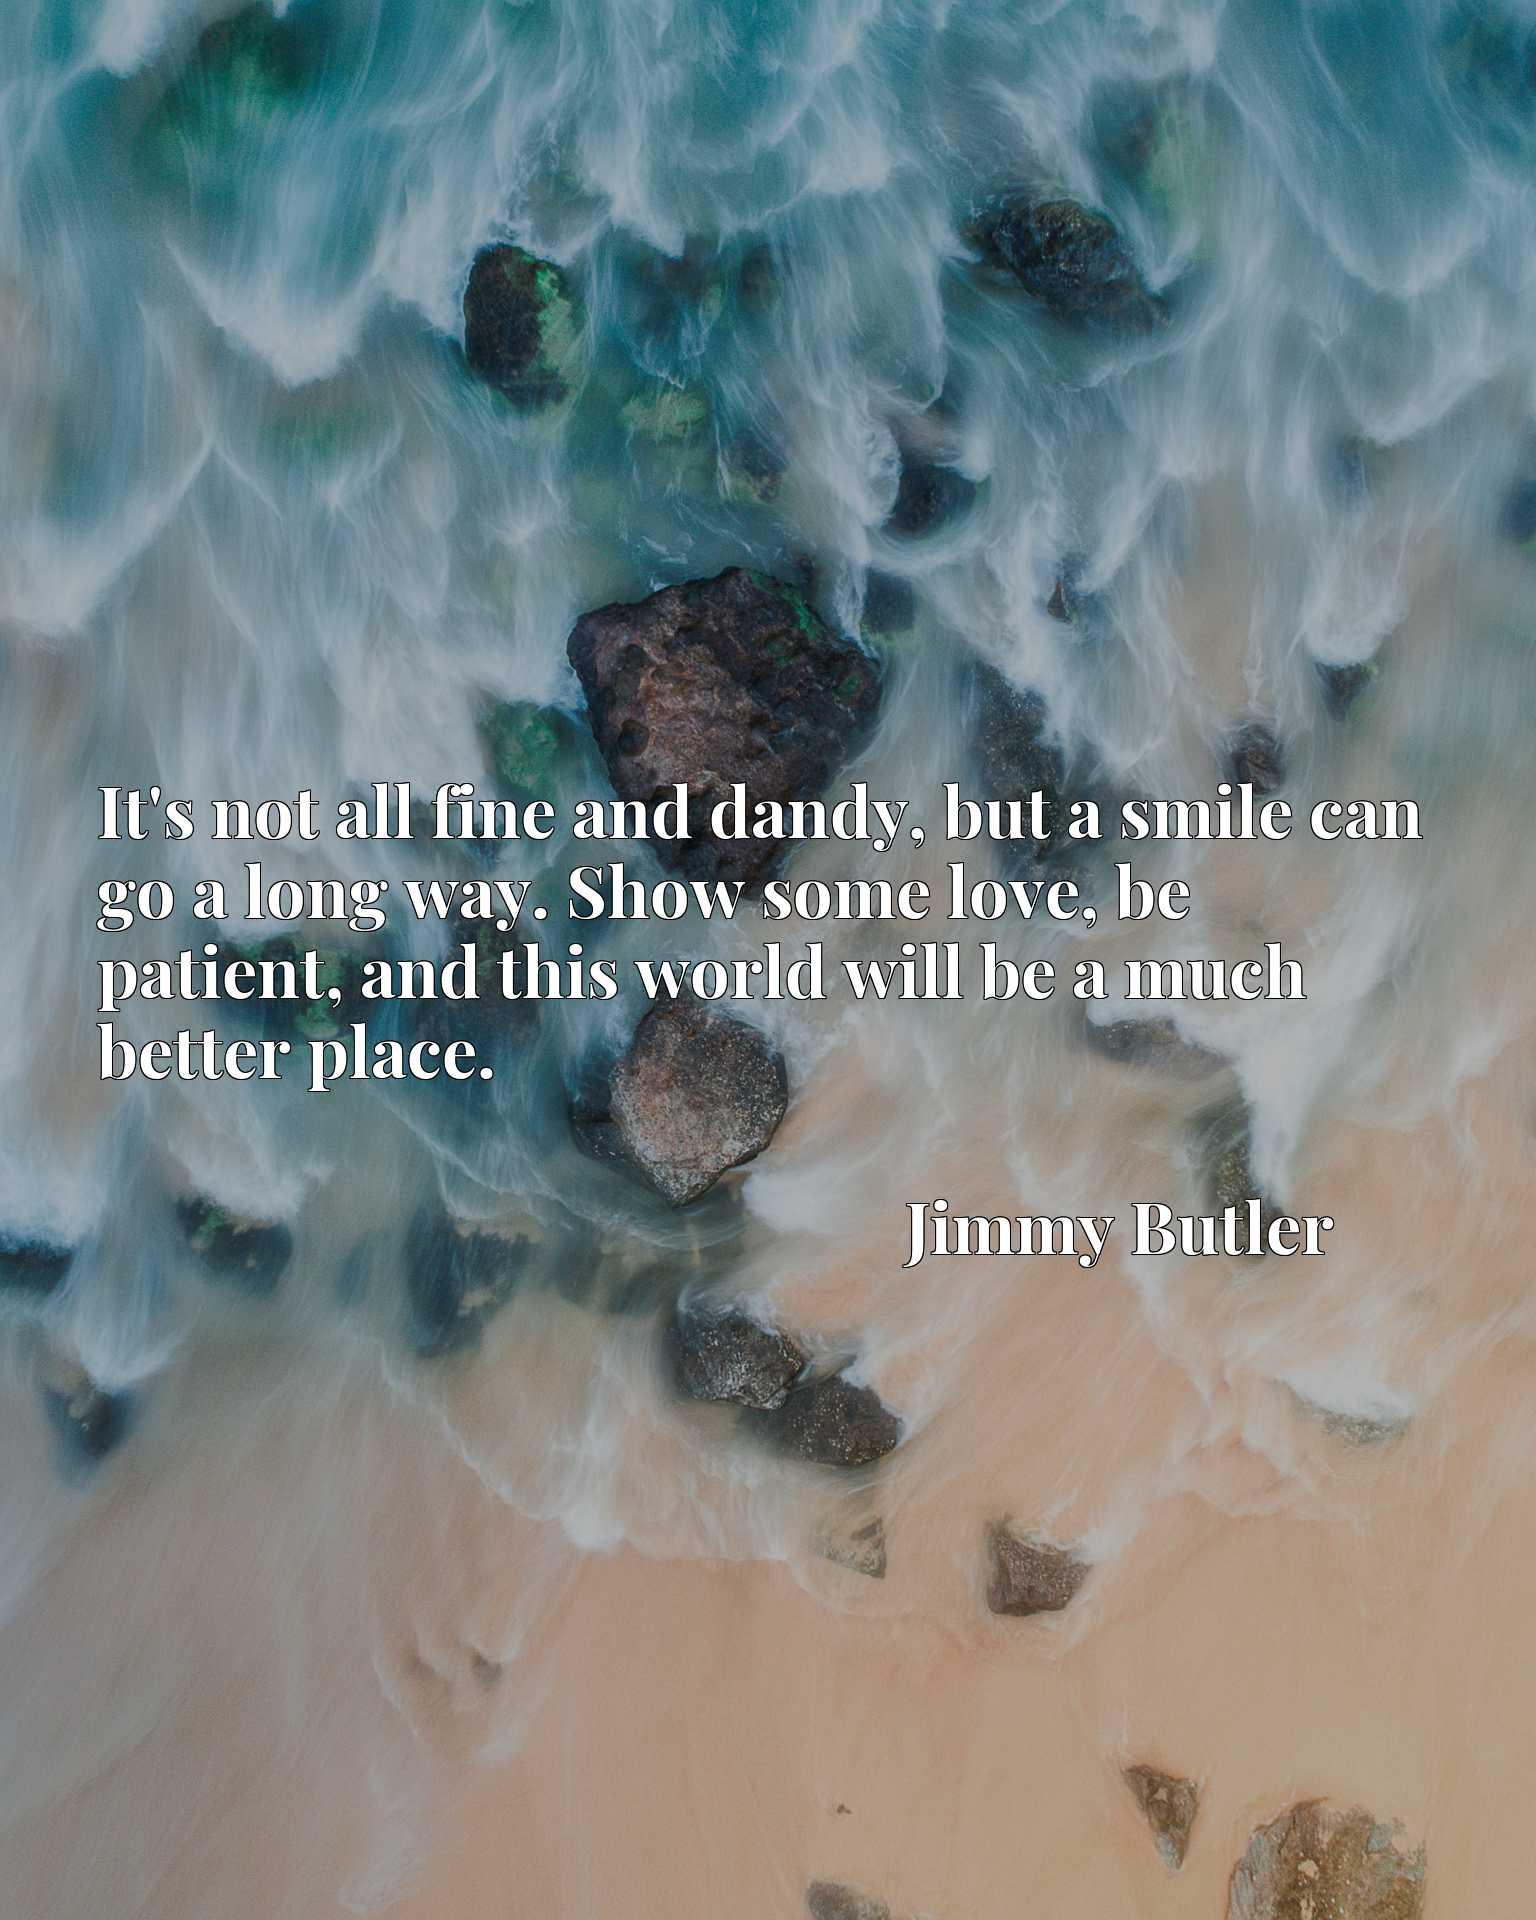 Quote Picture :It's not all fine and dandy, but a smile can go a long way. Show some love, be patient, and this world will be a much better place.